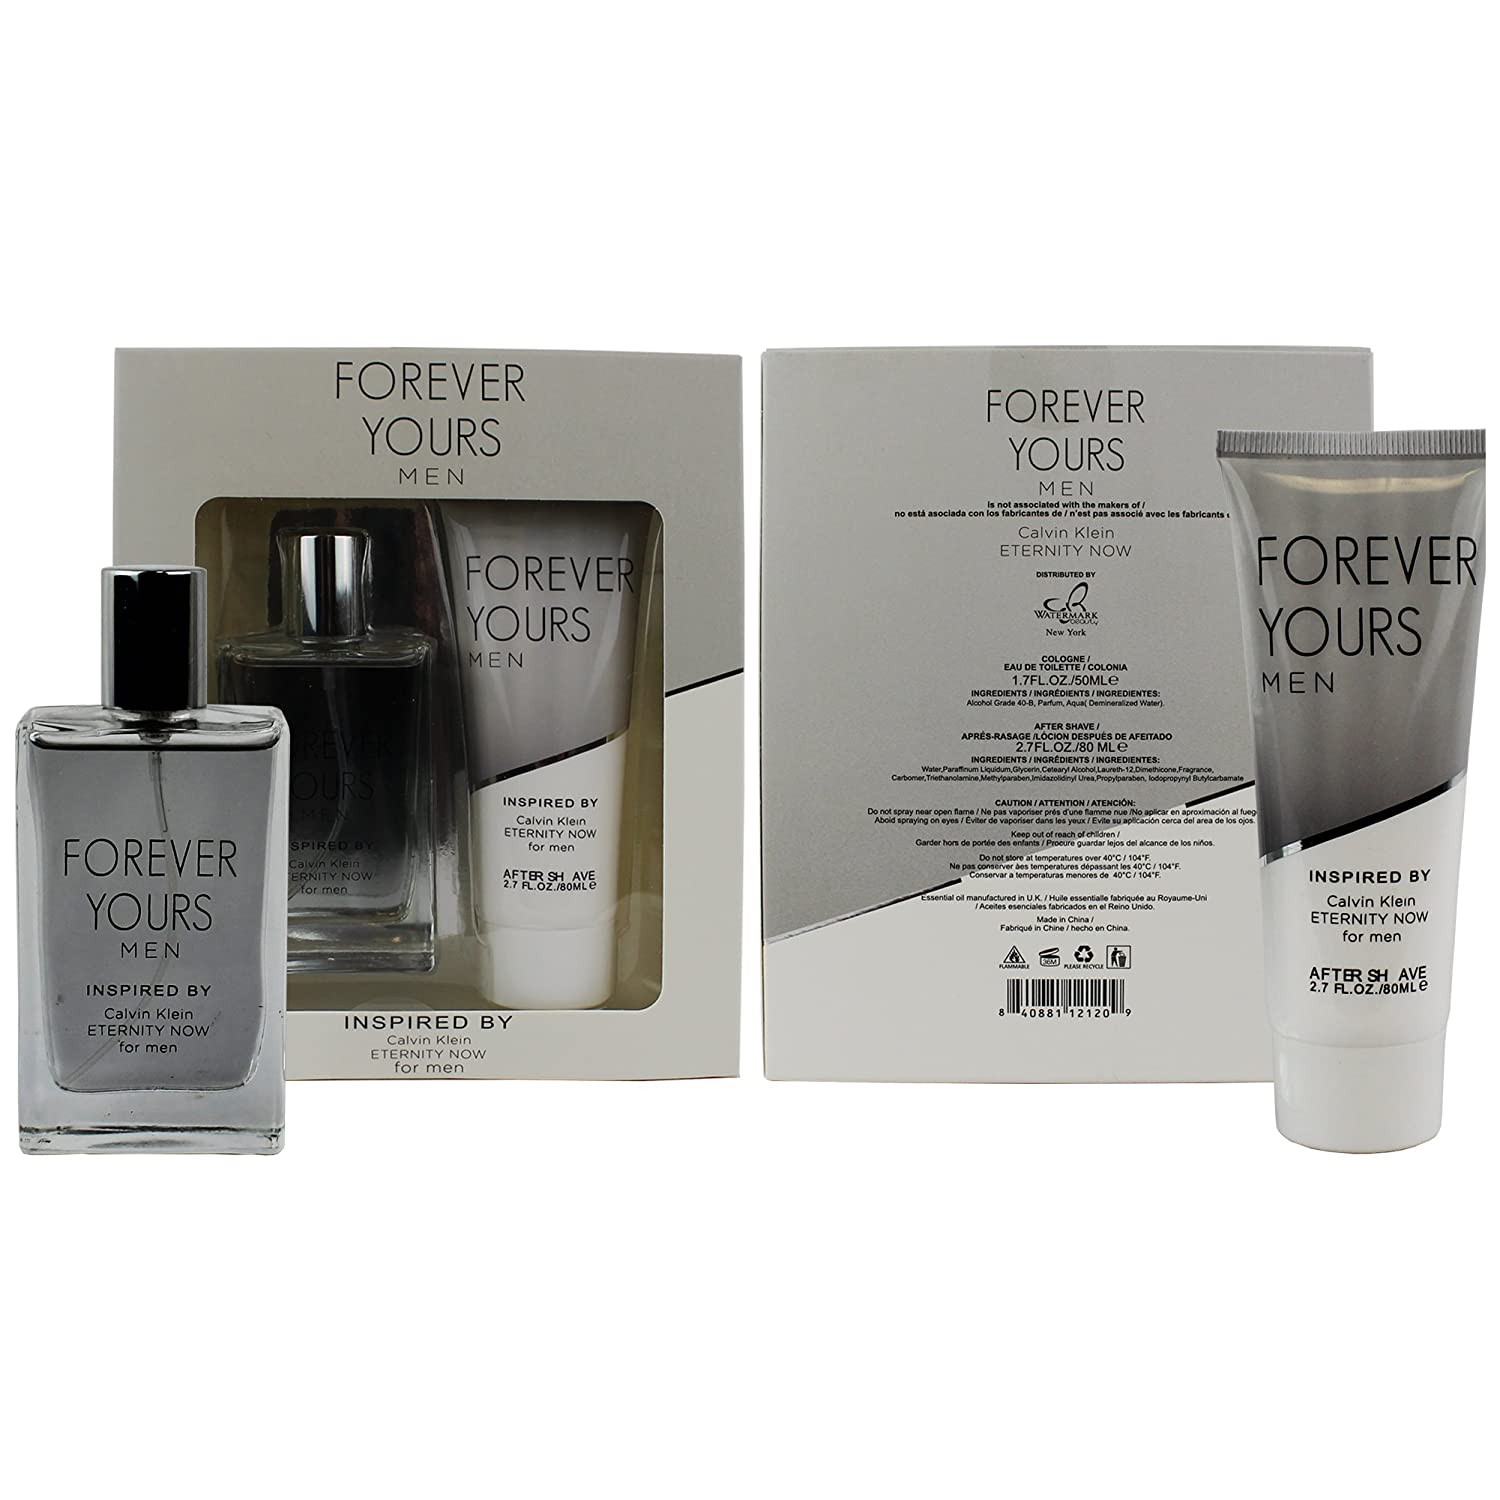 Amazon.com : Forever Yours 2 Piece Cologne Gift Set for Men Inspired by CK Eternity Now. EDT - 1.7 Fl Oz/50Ml, After Shave - 2.7 Fl Oz/80 Ml. : Beauty